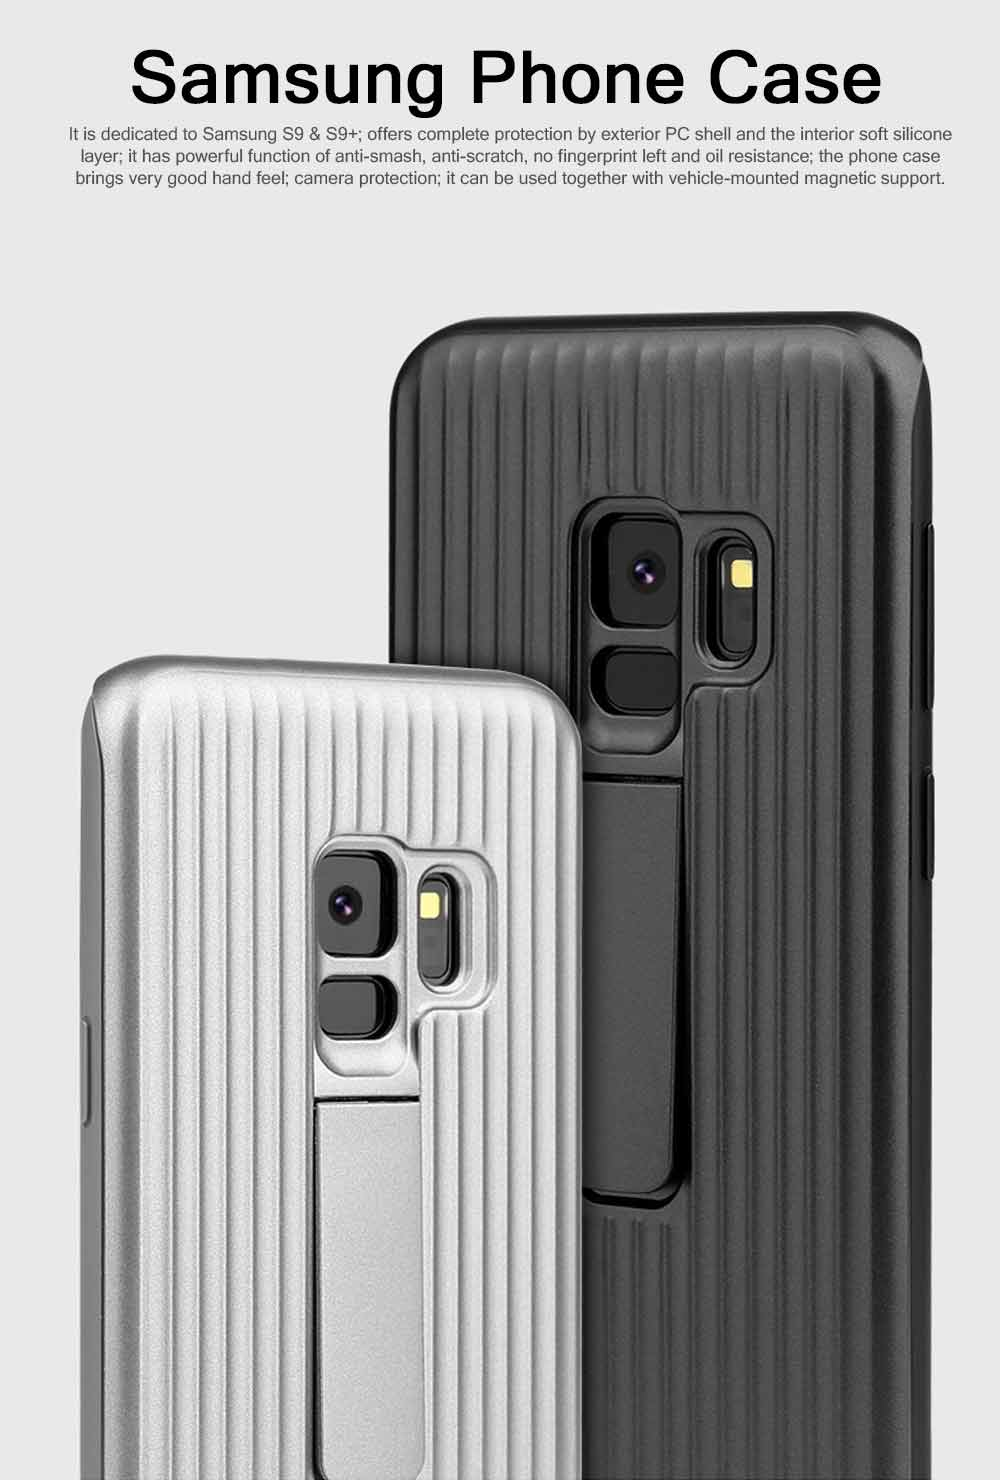 New-style Samsung Phone Case for Galaxy S9 & S9 Plus Vehicle-Mounted Protective Case Vertical Support Phone Case 0